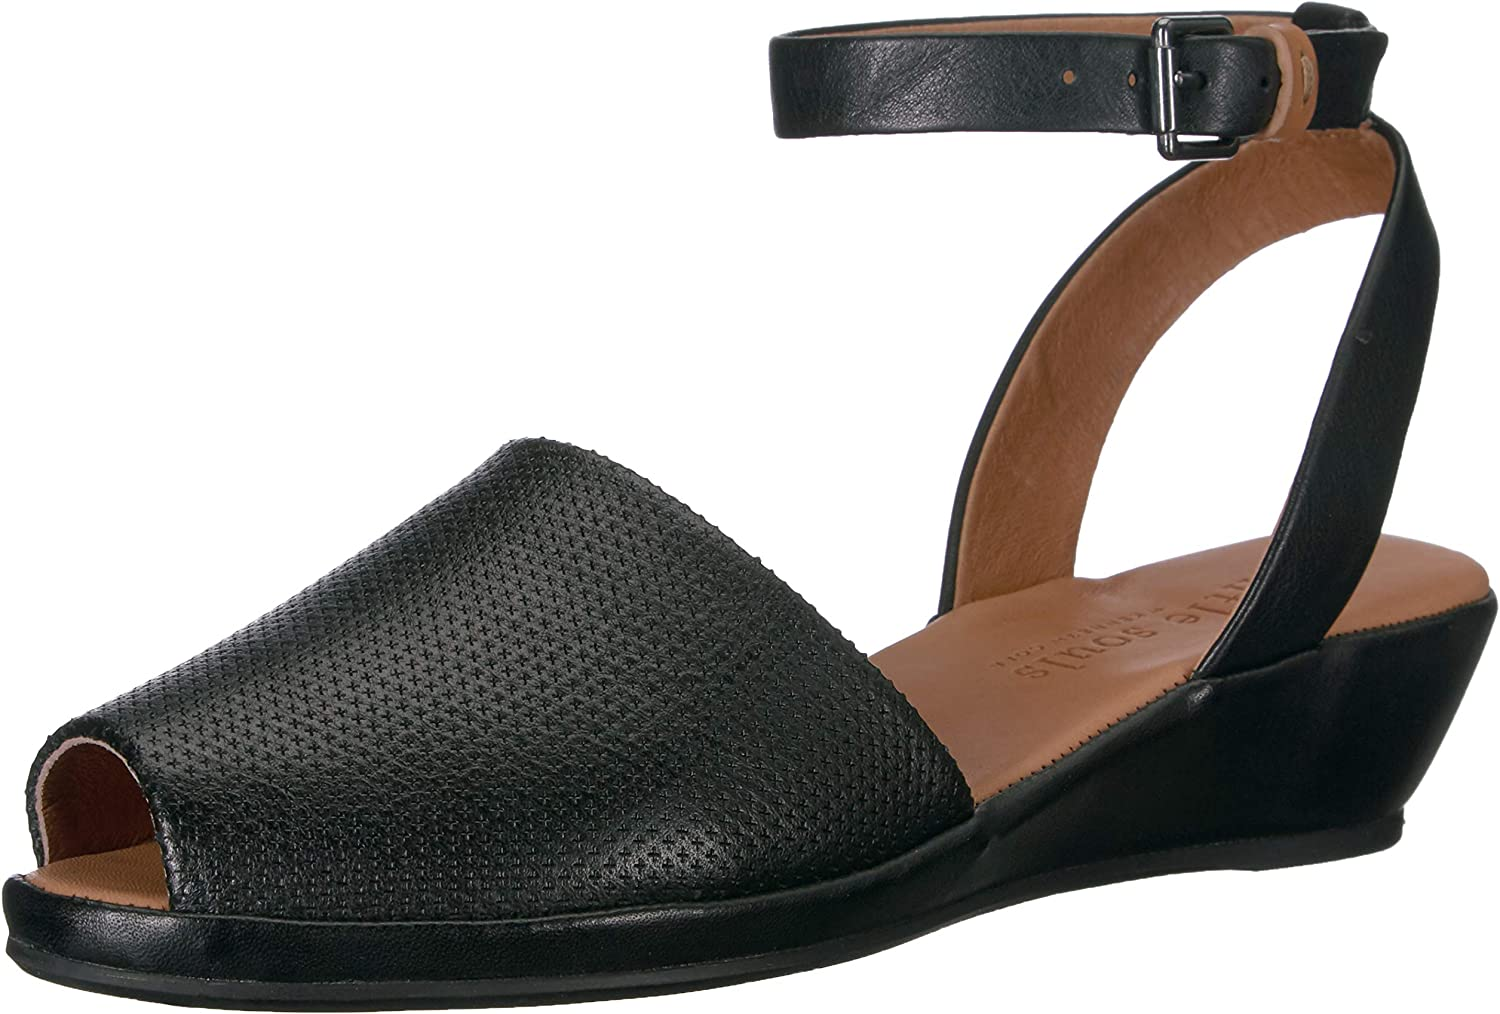 Gentle Souls Womens Lily Ankle Wrap 2 Low Wedge Sandal Wedge Sandal